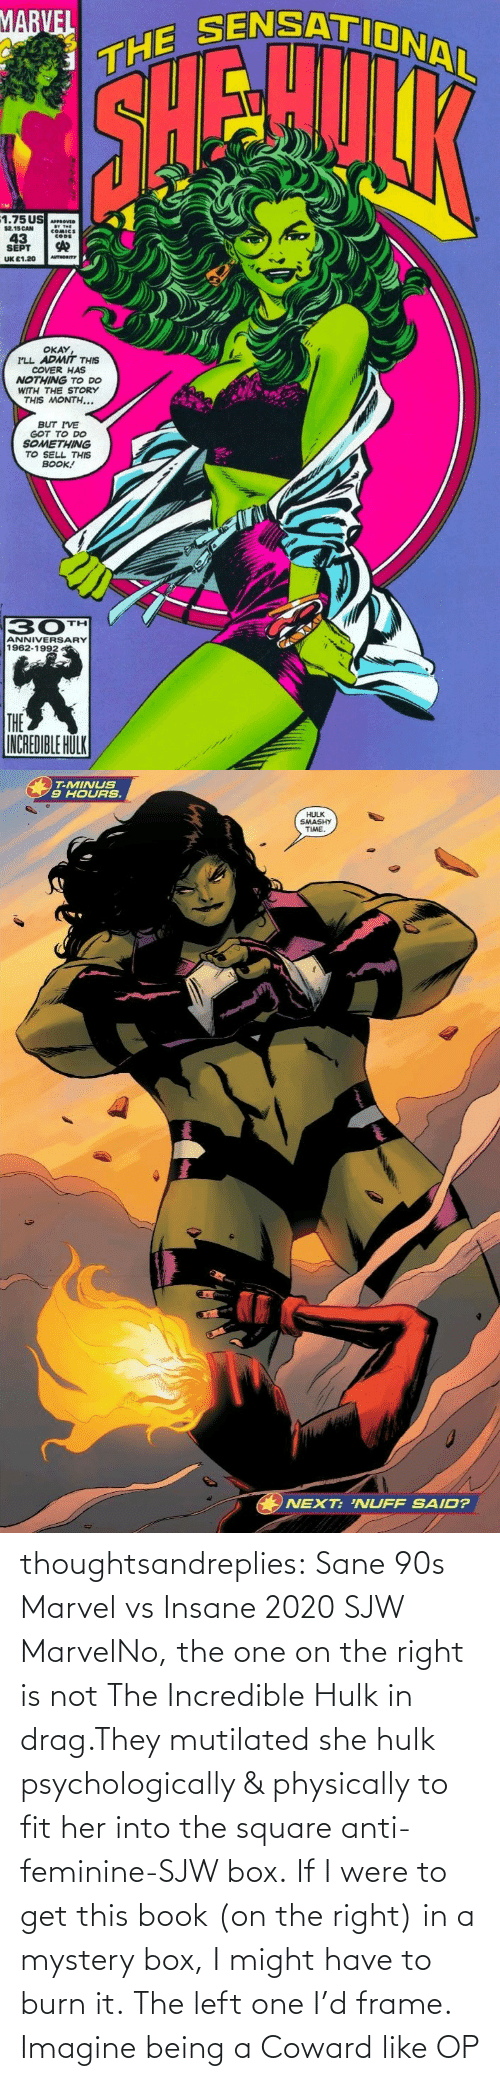 incredible: thoughtsandreplies:  Sane 90s Marvel vs Insane 2020 SJW MarvelNo, the one on the right is not The Incredible Hulk in drag.They mutilated she hulk psychologically & physically to fit her into the square anti-feminine-SJW box. If I were to get this book (on the right) in a mystery box, I might have to burn it. The left one I'd frame.    Imagine being a Coward like OP